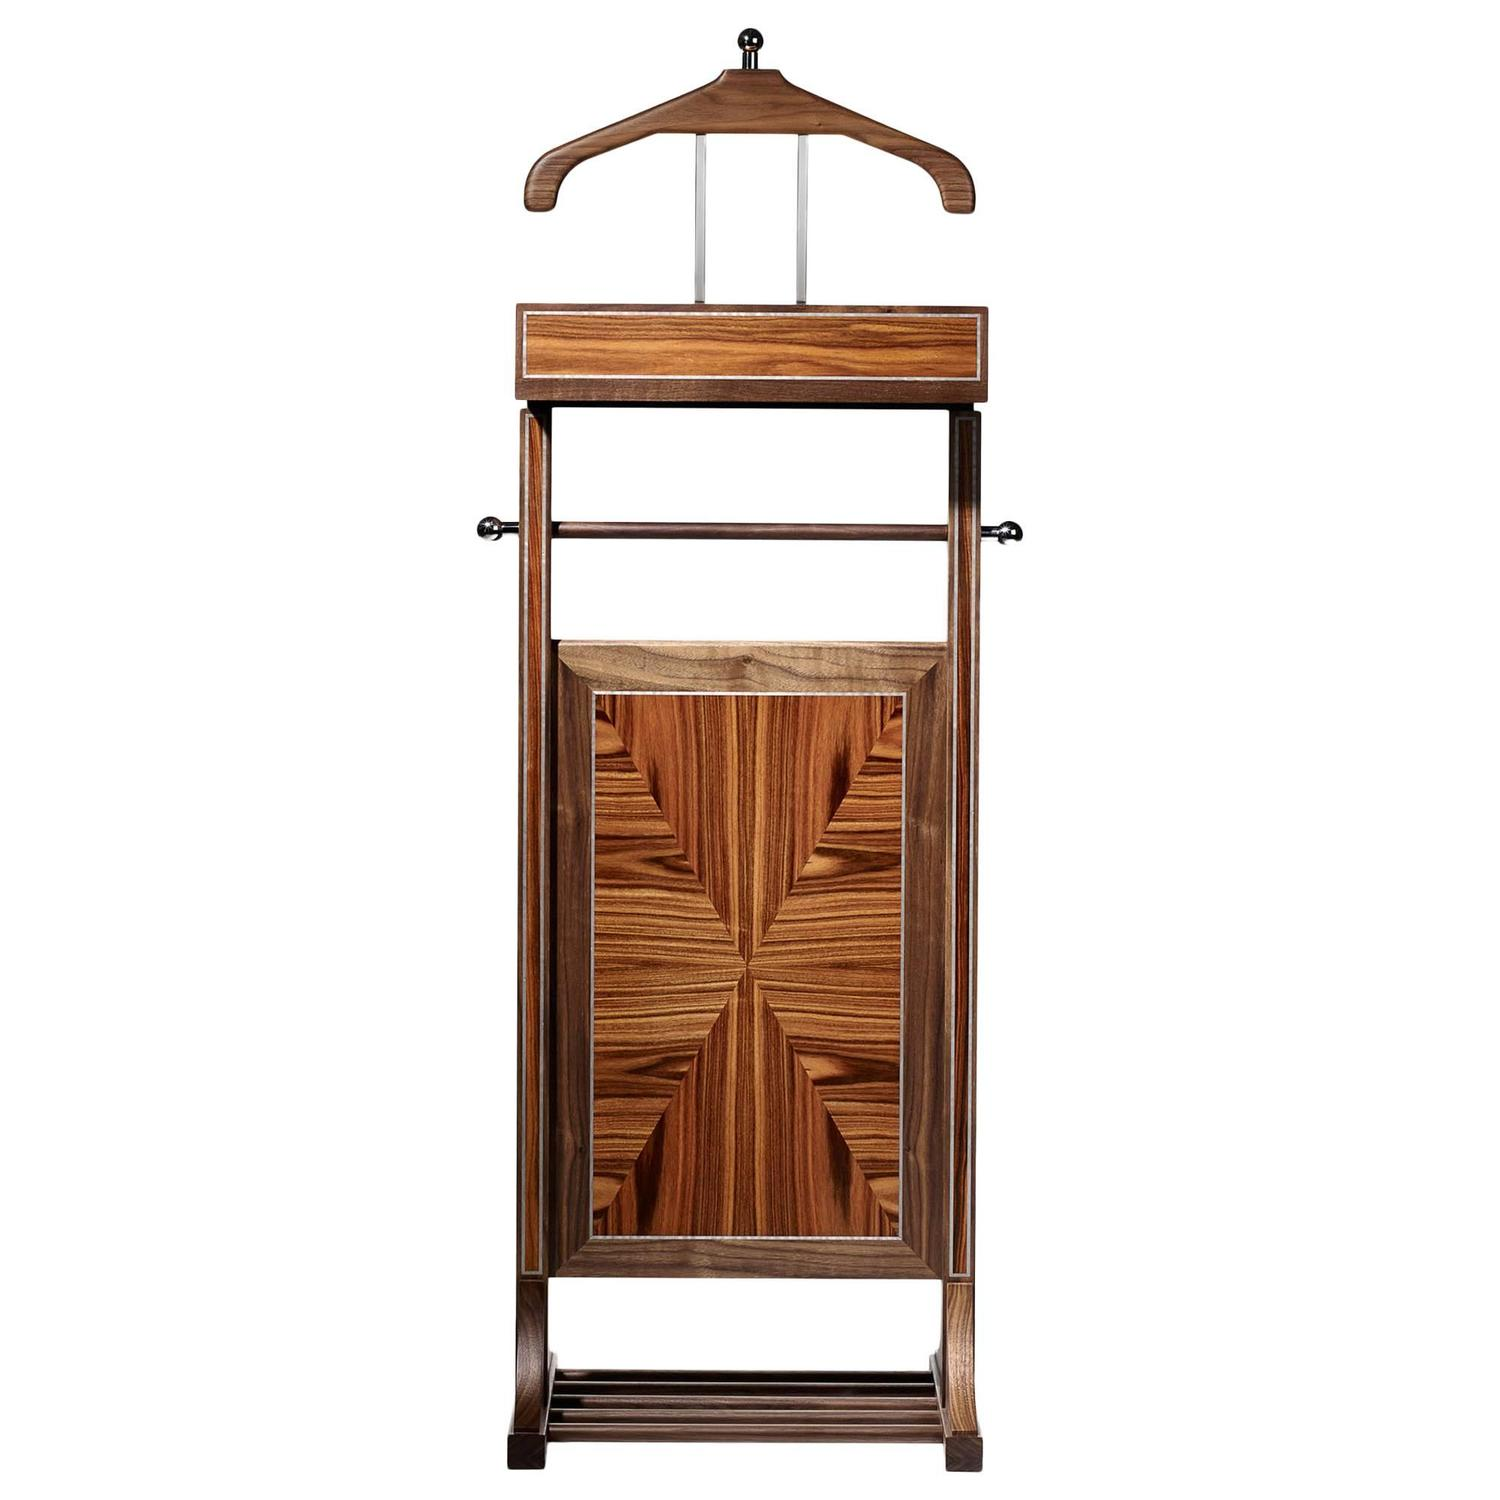 Ordinaire Valet Stand For Sale At 1stdibs